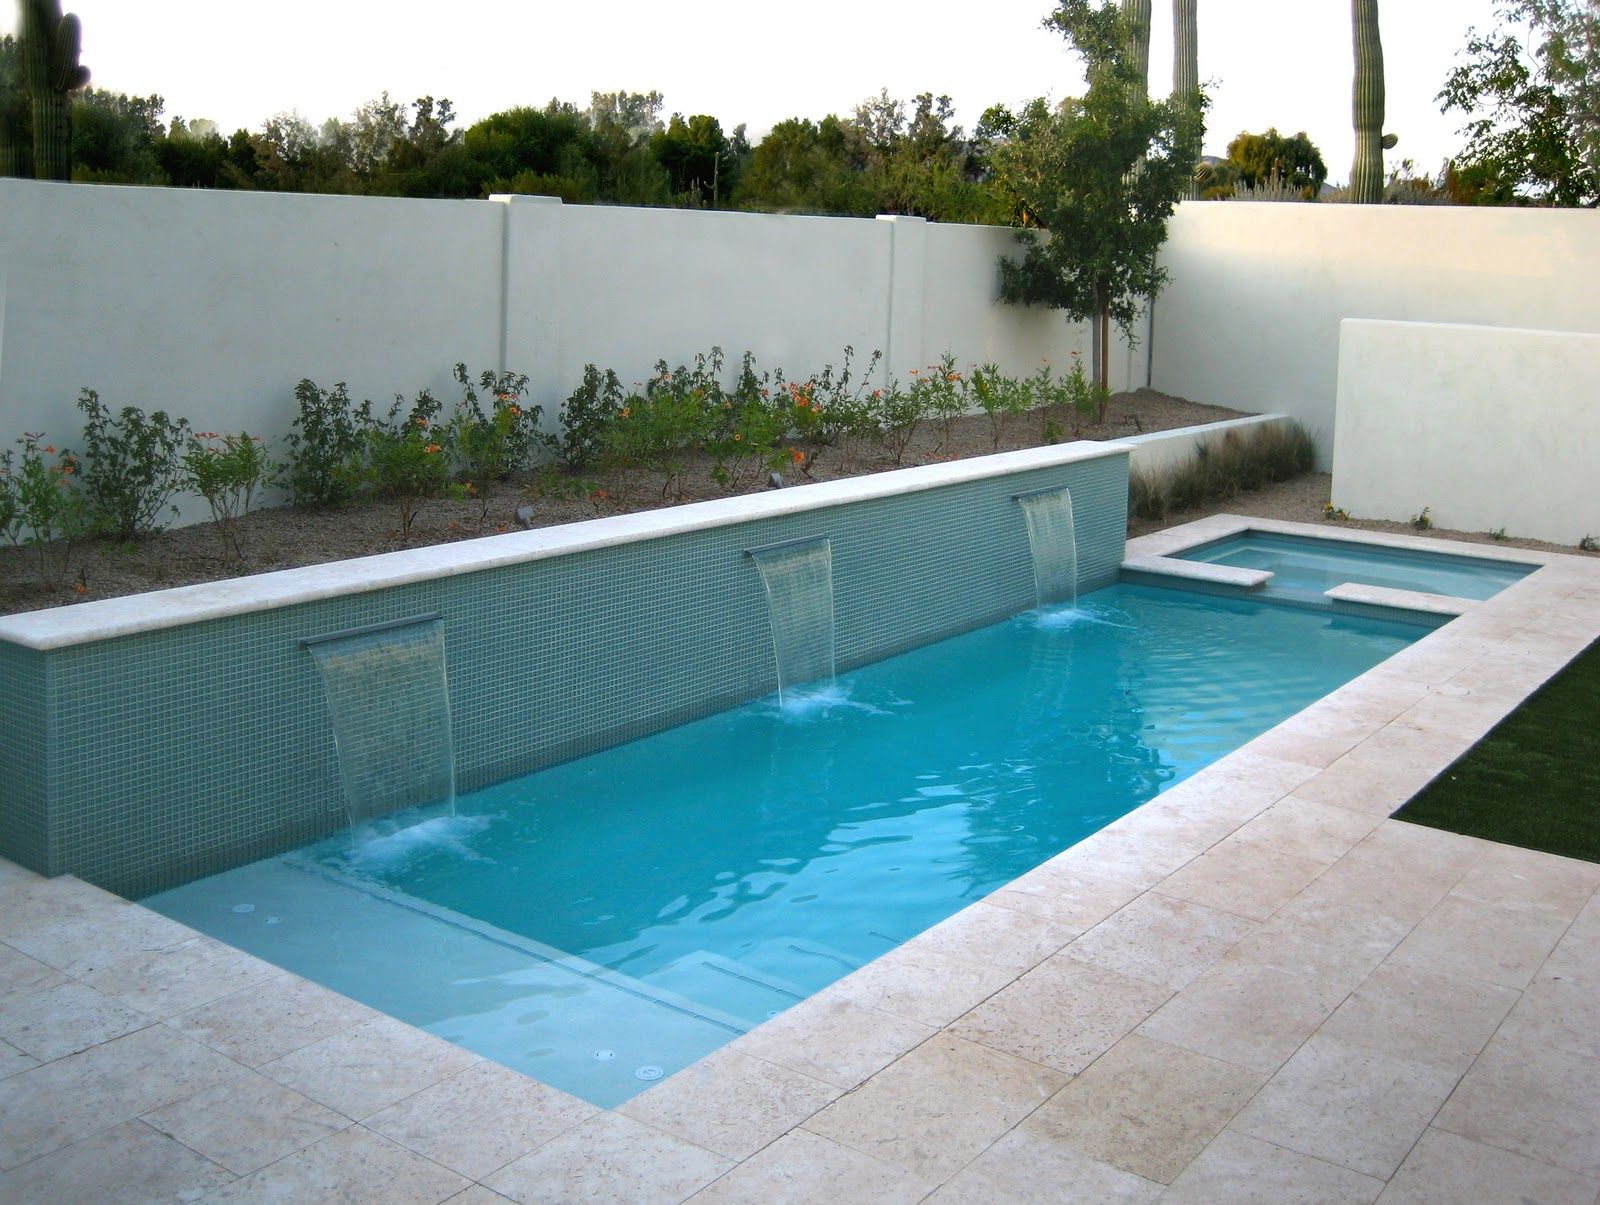 mini swimming pool pictures photo - 5